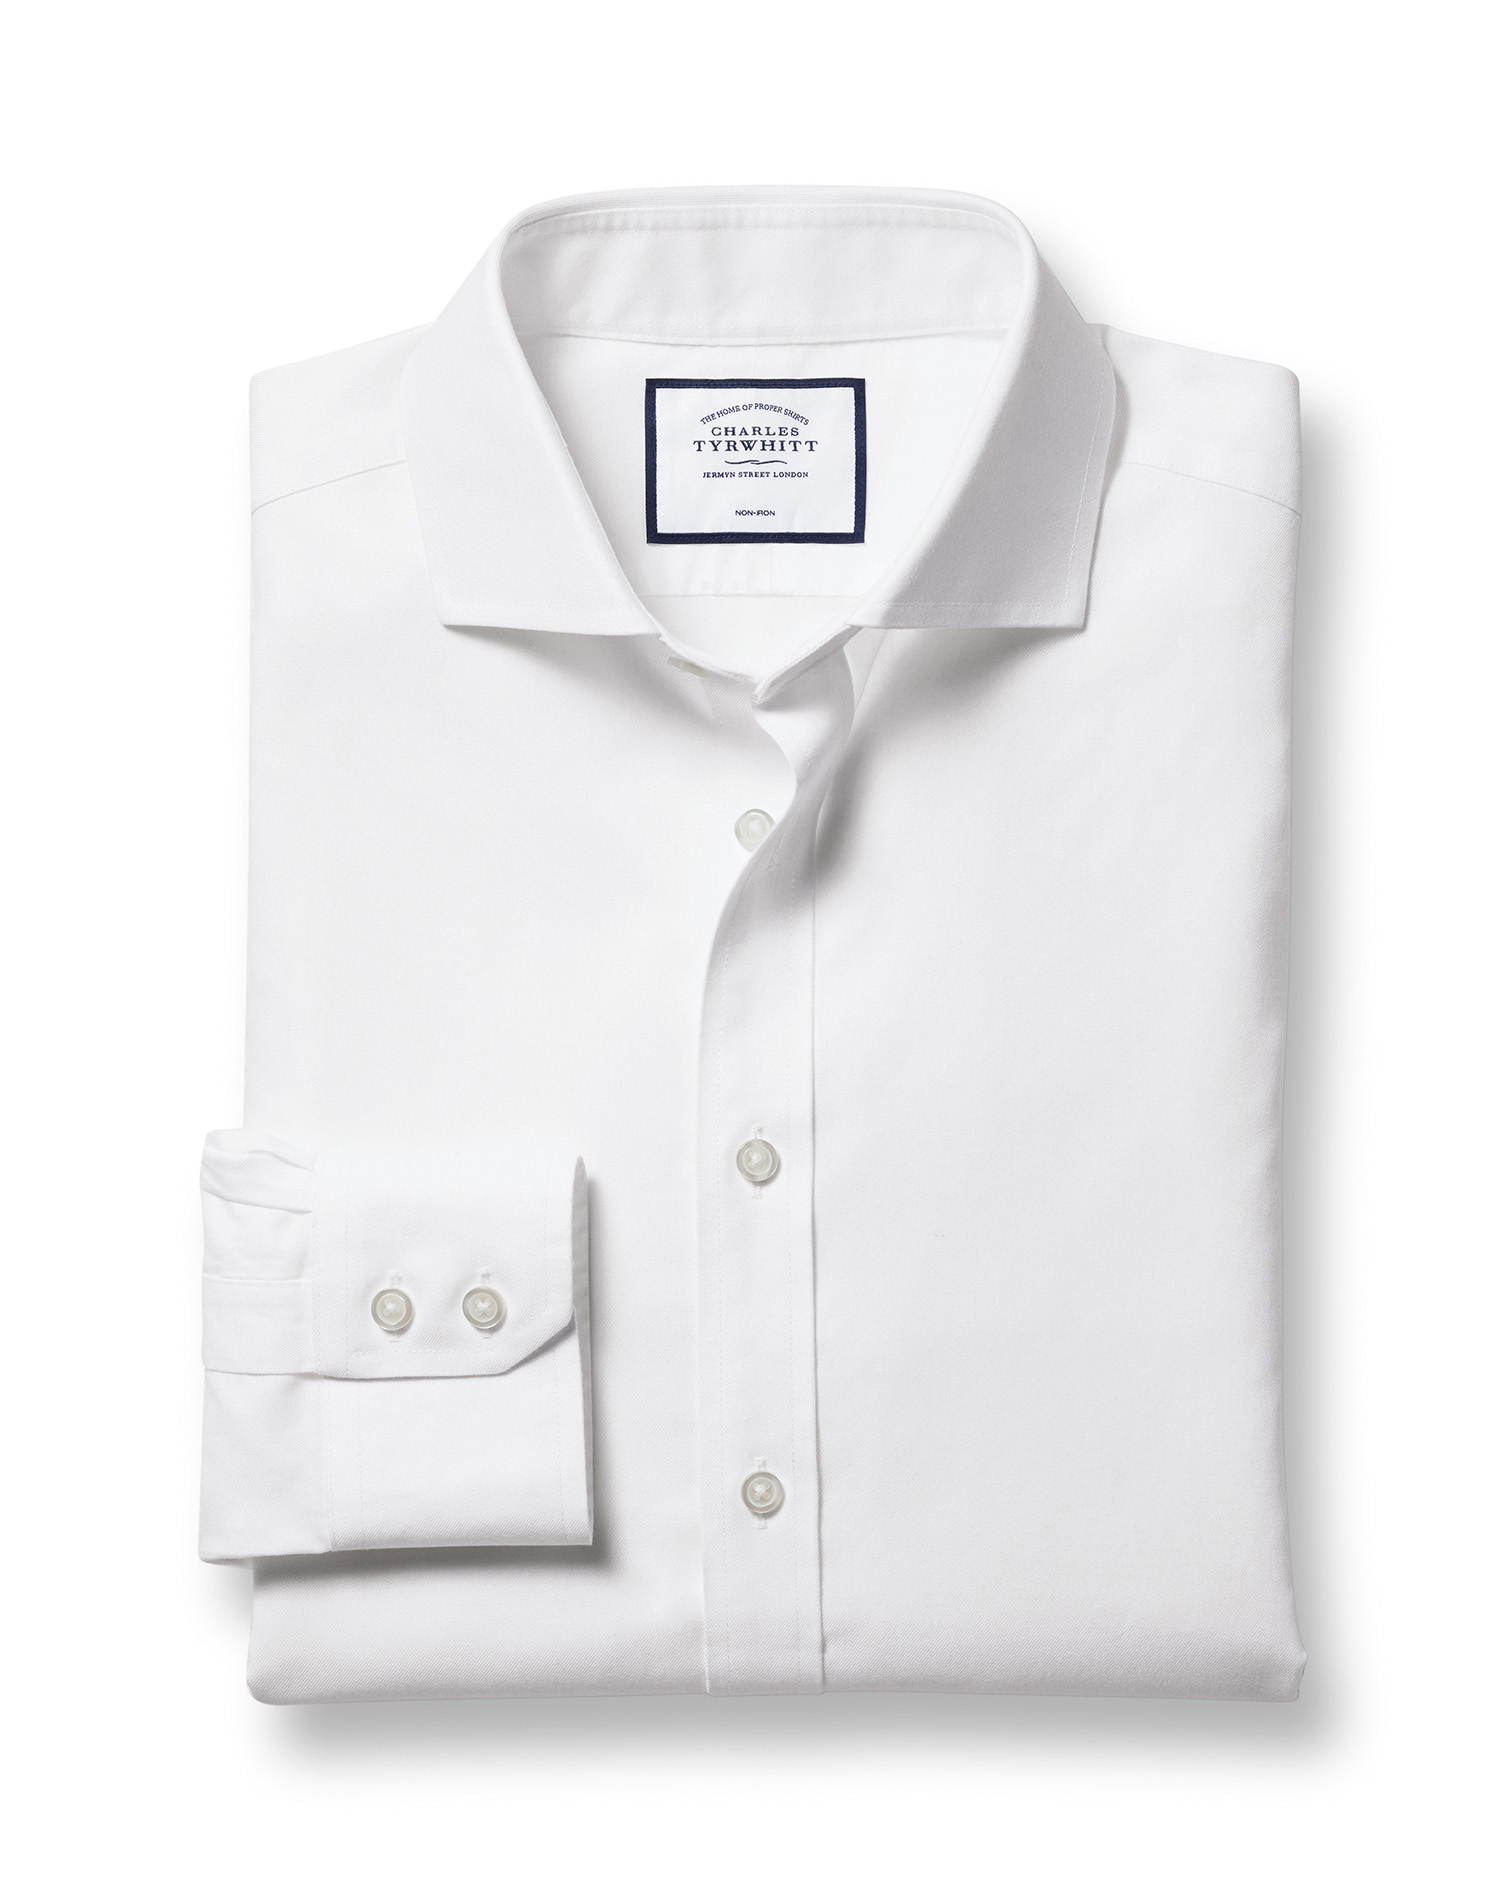 Extra Slim Fit Cutaway Non-Iron Twill White Cotton Formal Shirt Single Cuff Size 16.5/36 by Charles